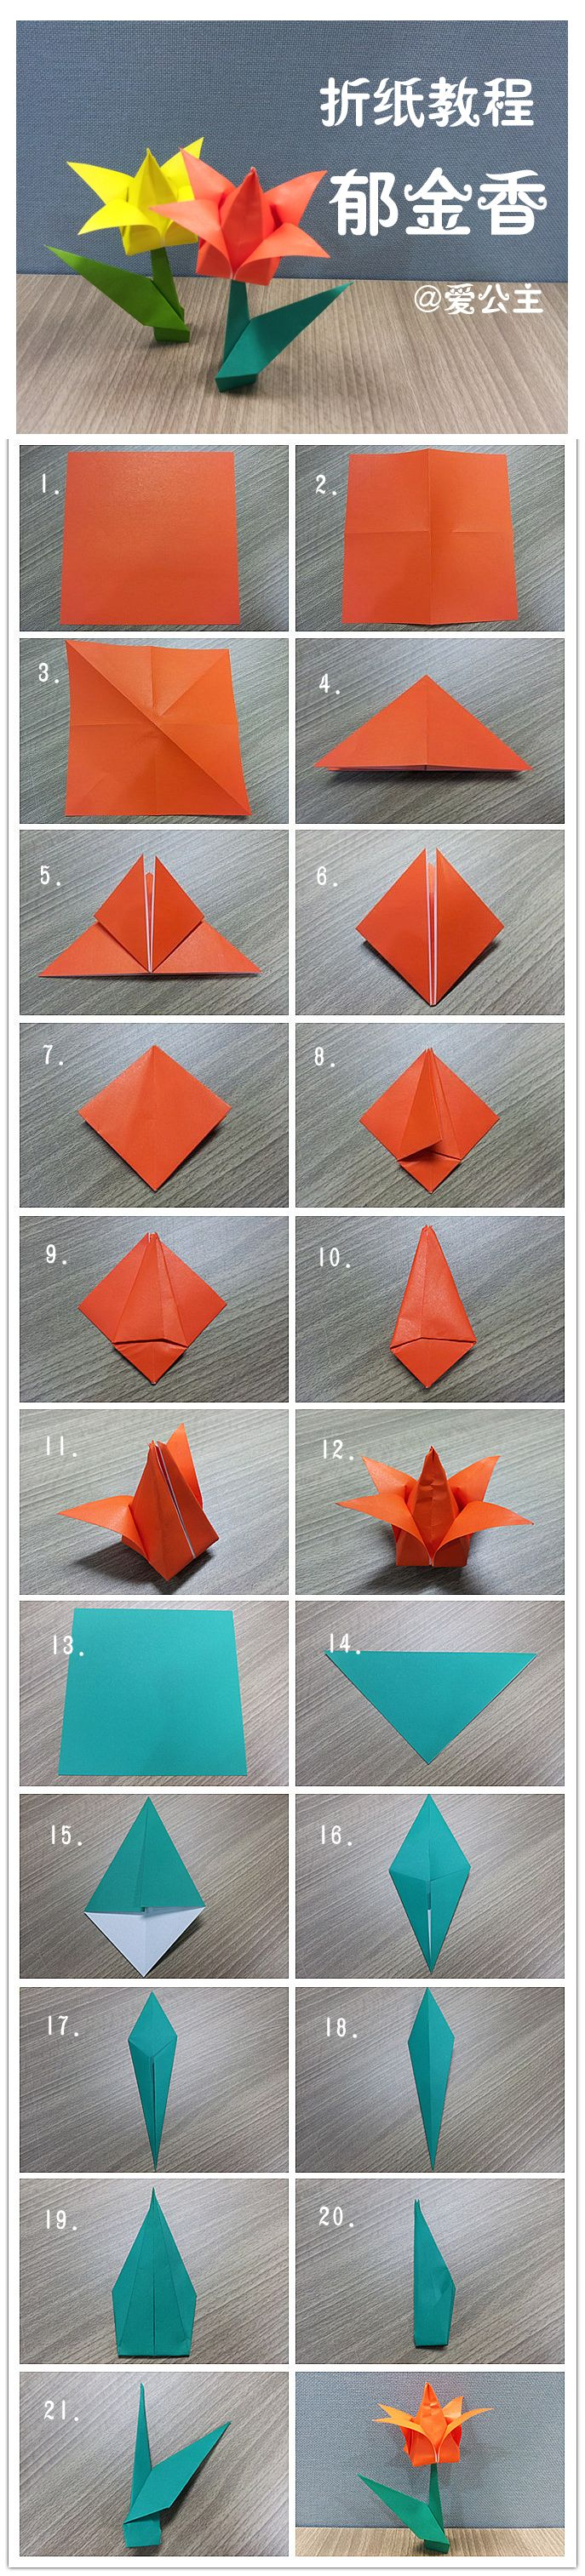 Best 25 origami flowers ideas on pinterest origami flower diy origami flower and stem floridaeventfo Images